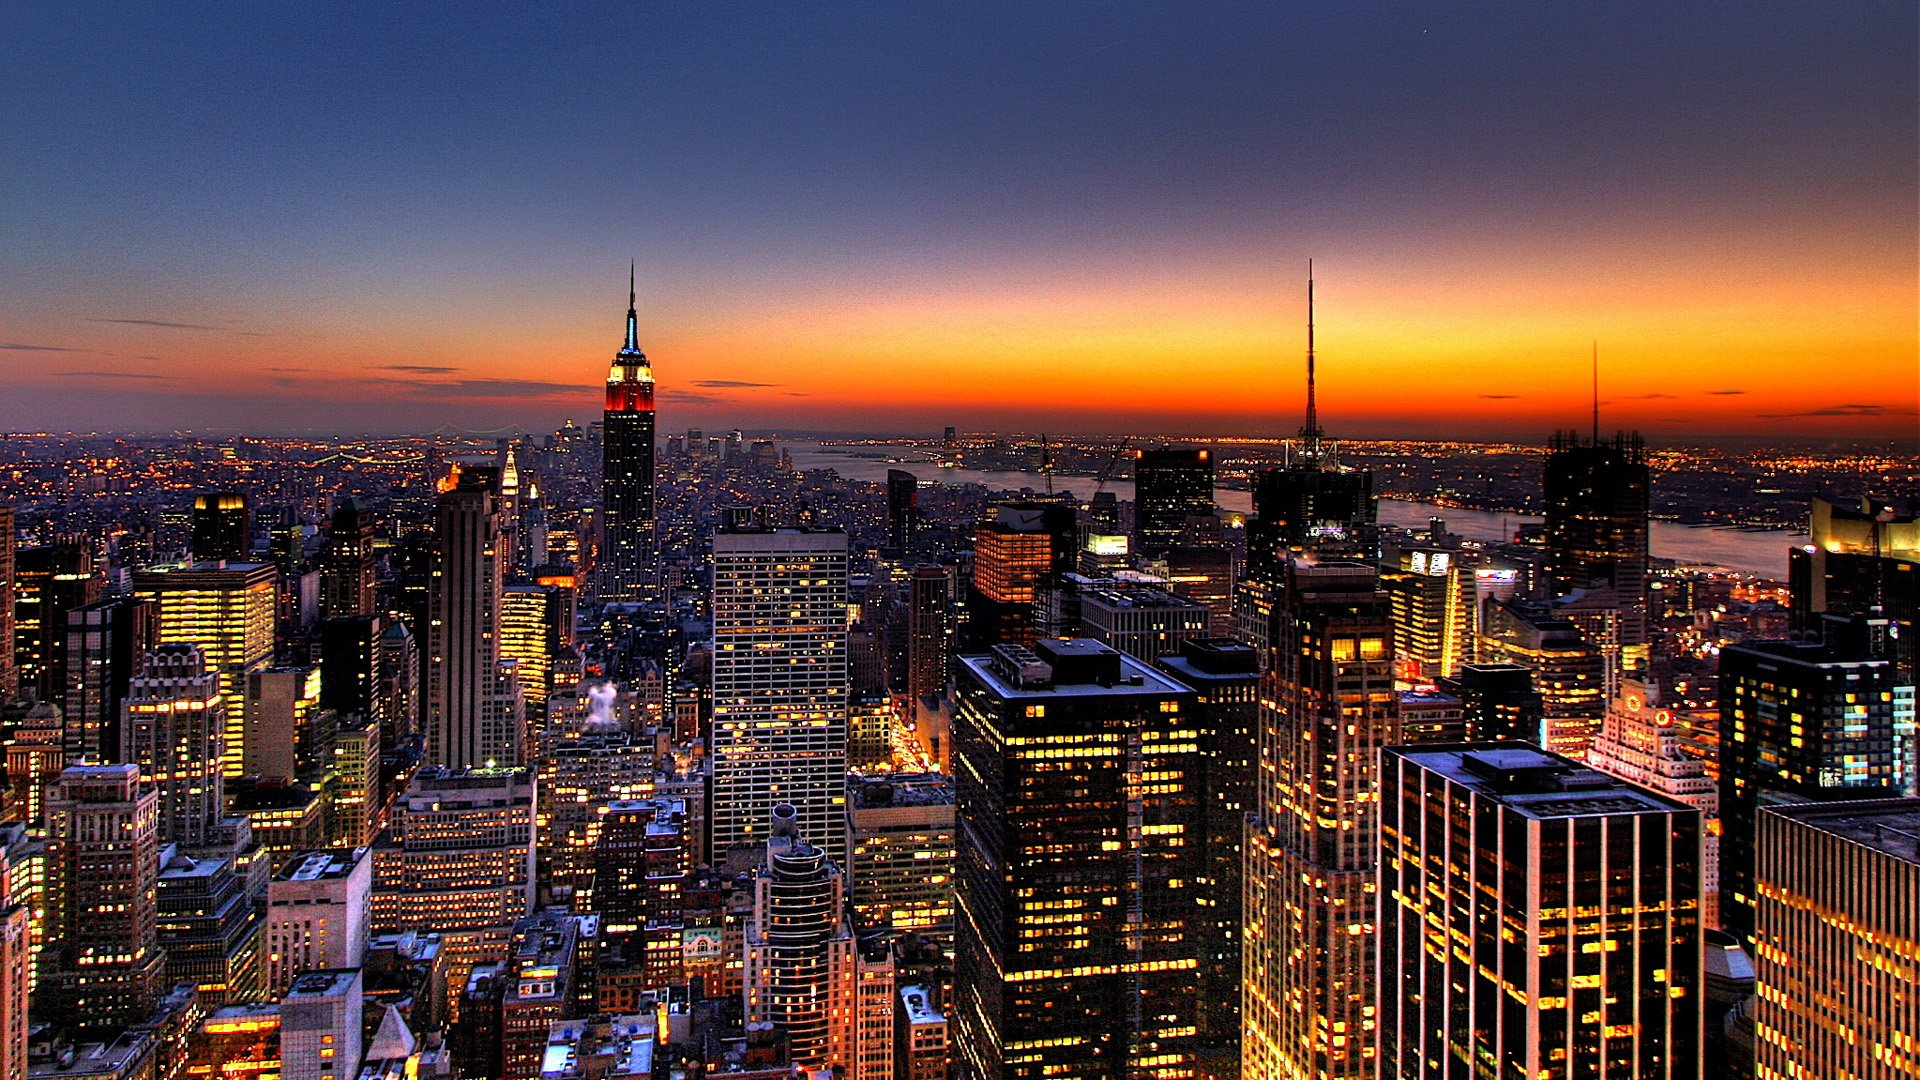 NYC Skyline Wallpaper at Night HD wallpaper background 1920x1080